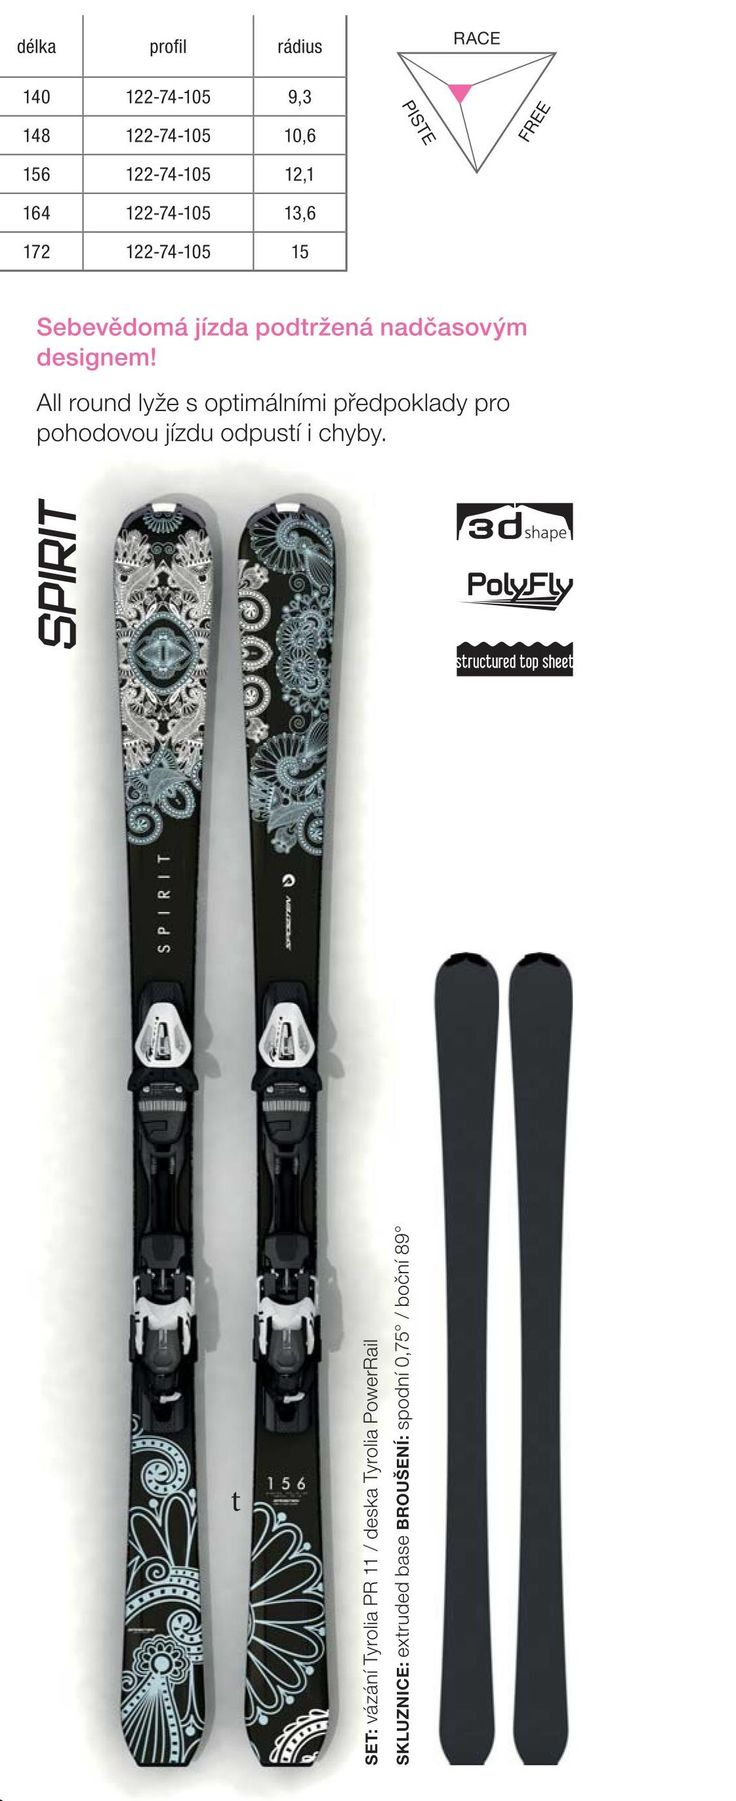 Women design - Sporten Spirit skis 2015/16 collection